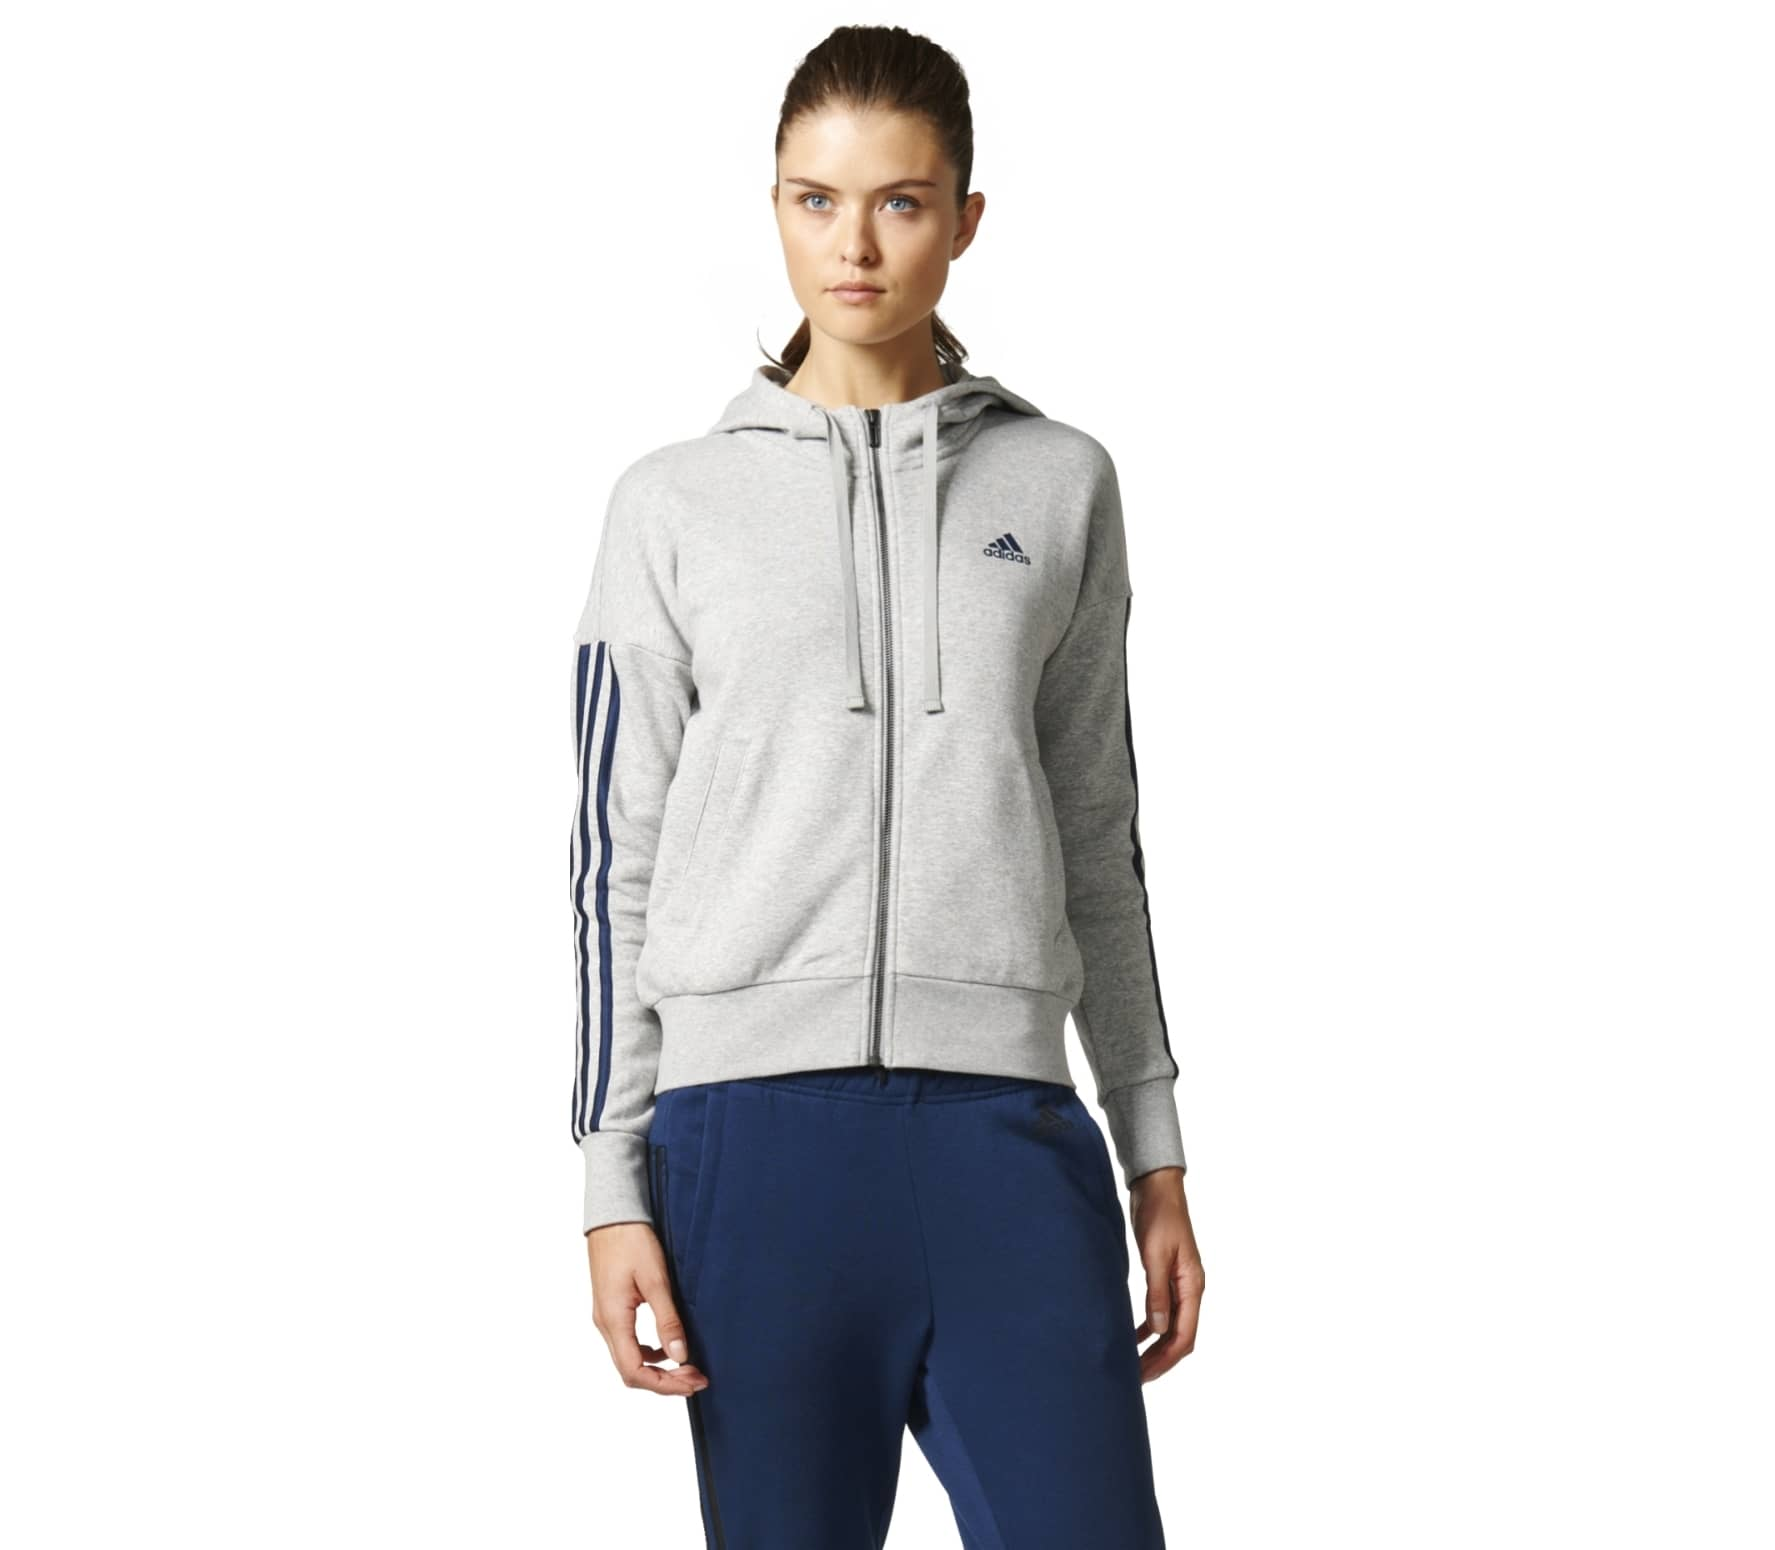 54835397bc Adidas - Essentials 3 Stripes Full-Zip felpa con cappuccio training da  donna (grigio/nero)